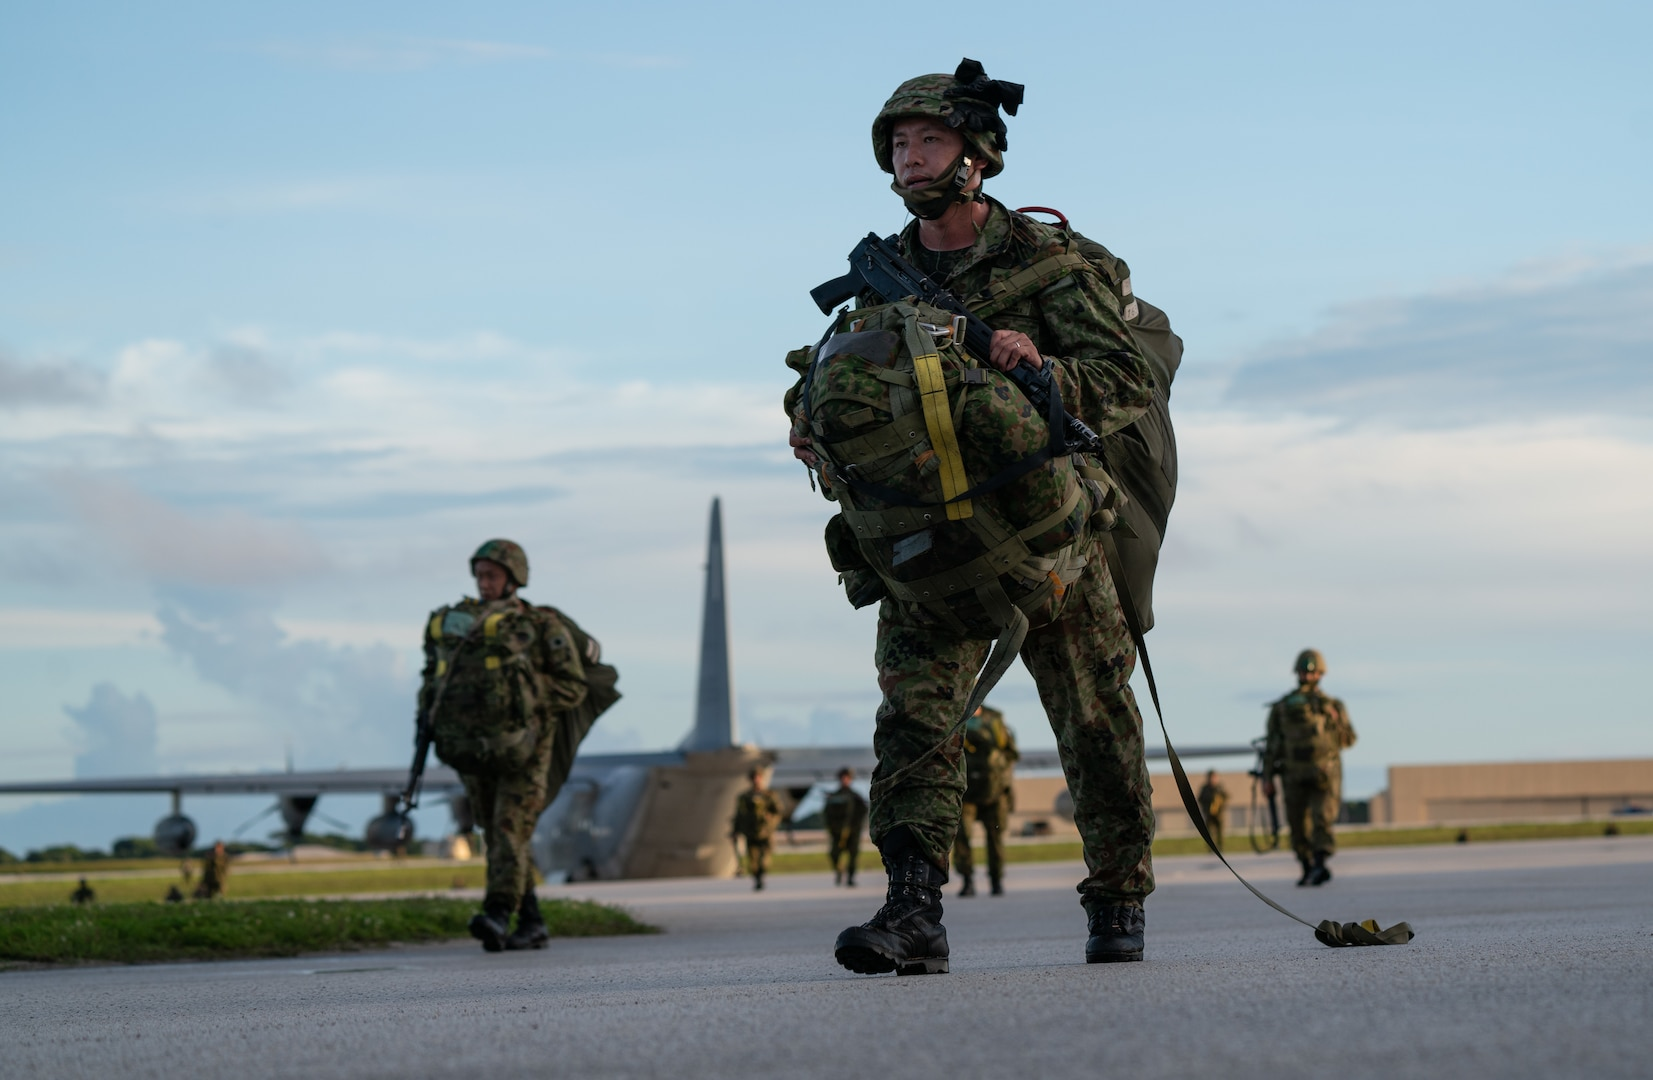 Paratroopers descend on Guam during Exercise Forager 21